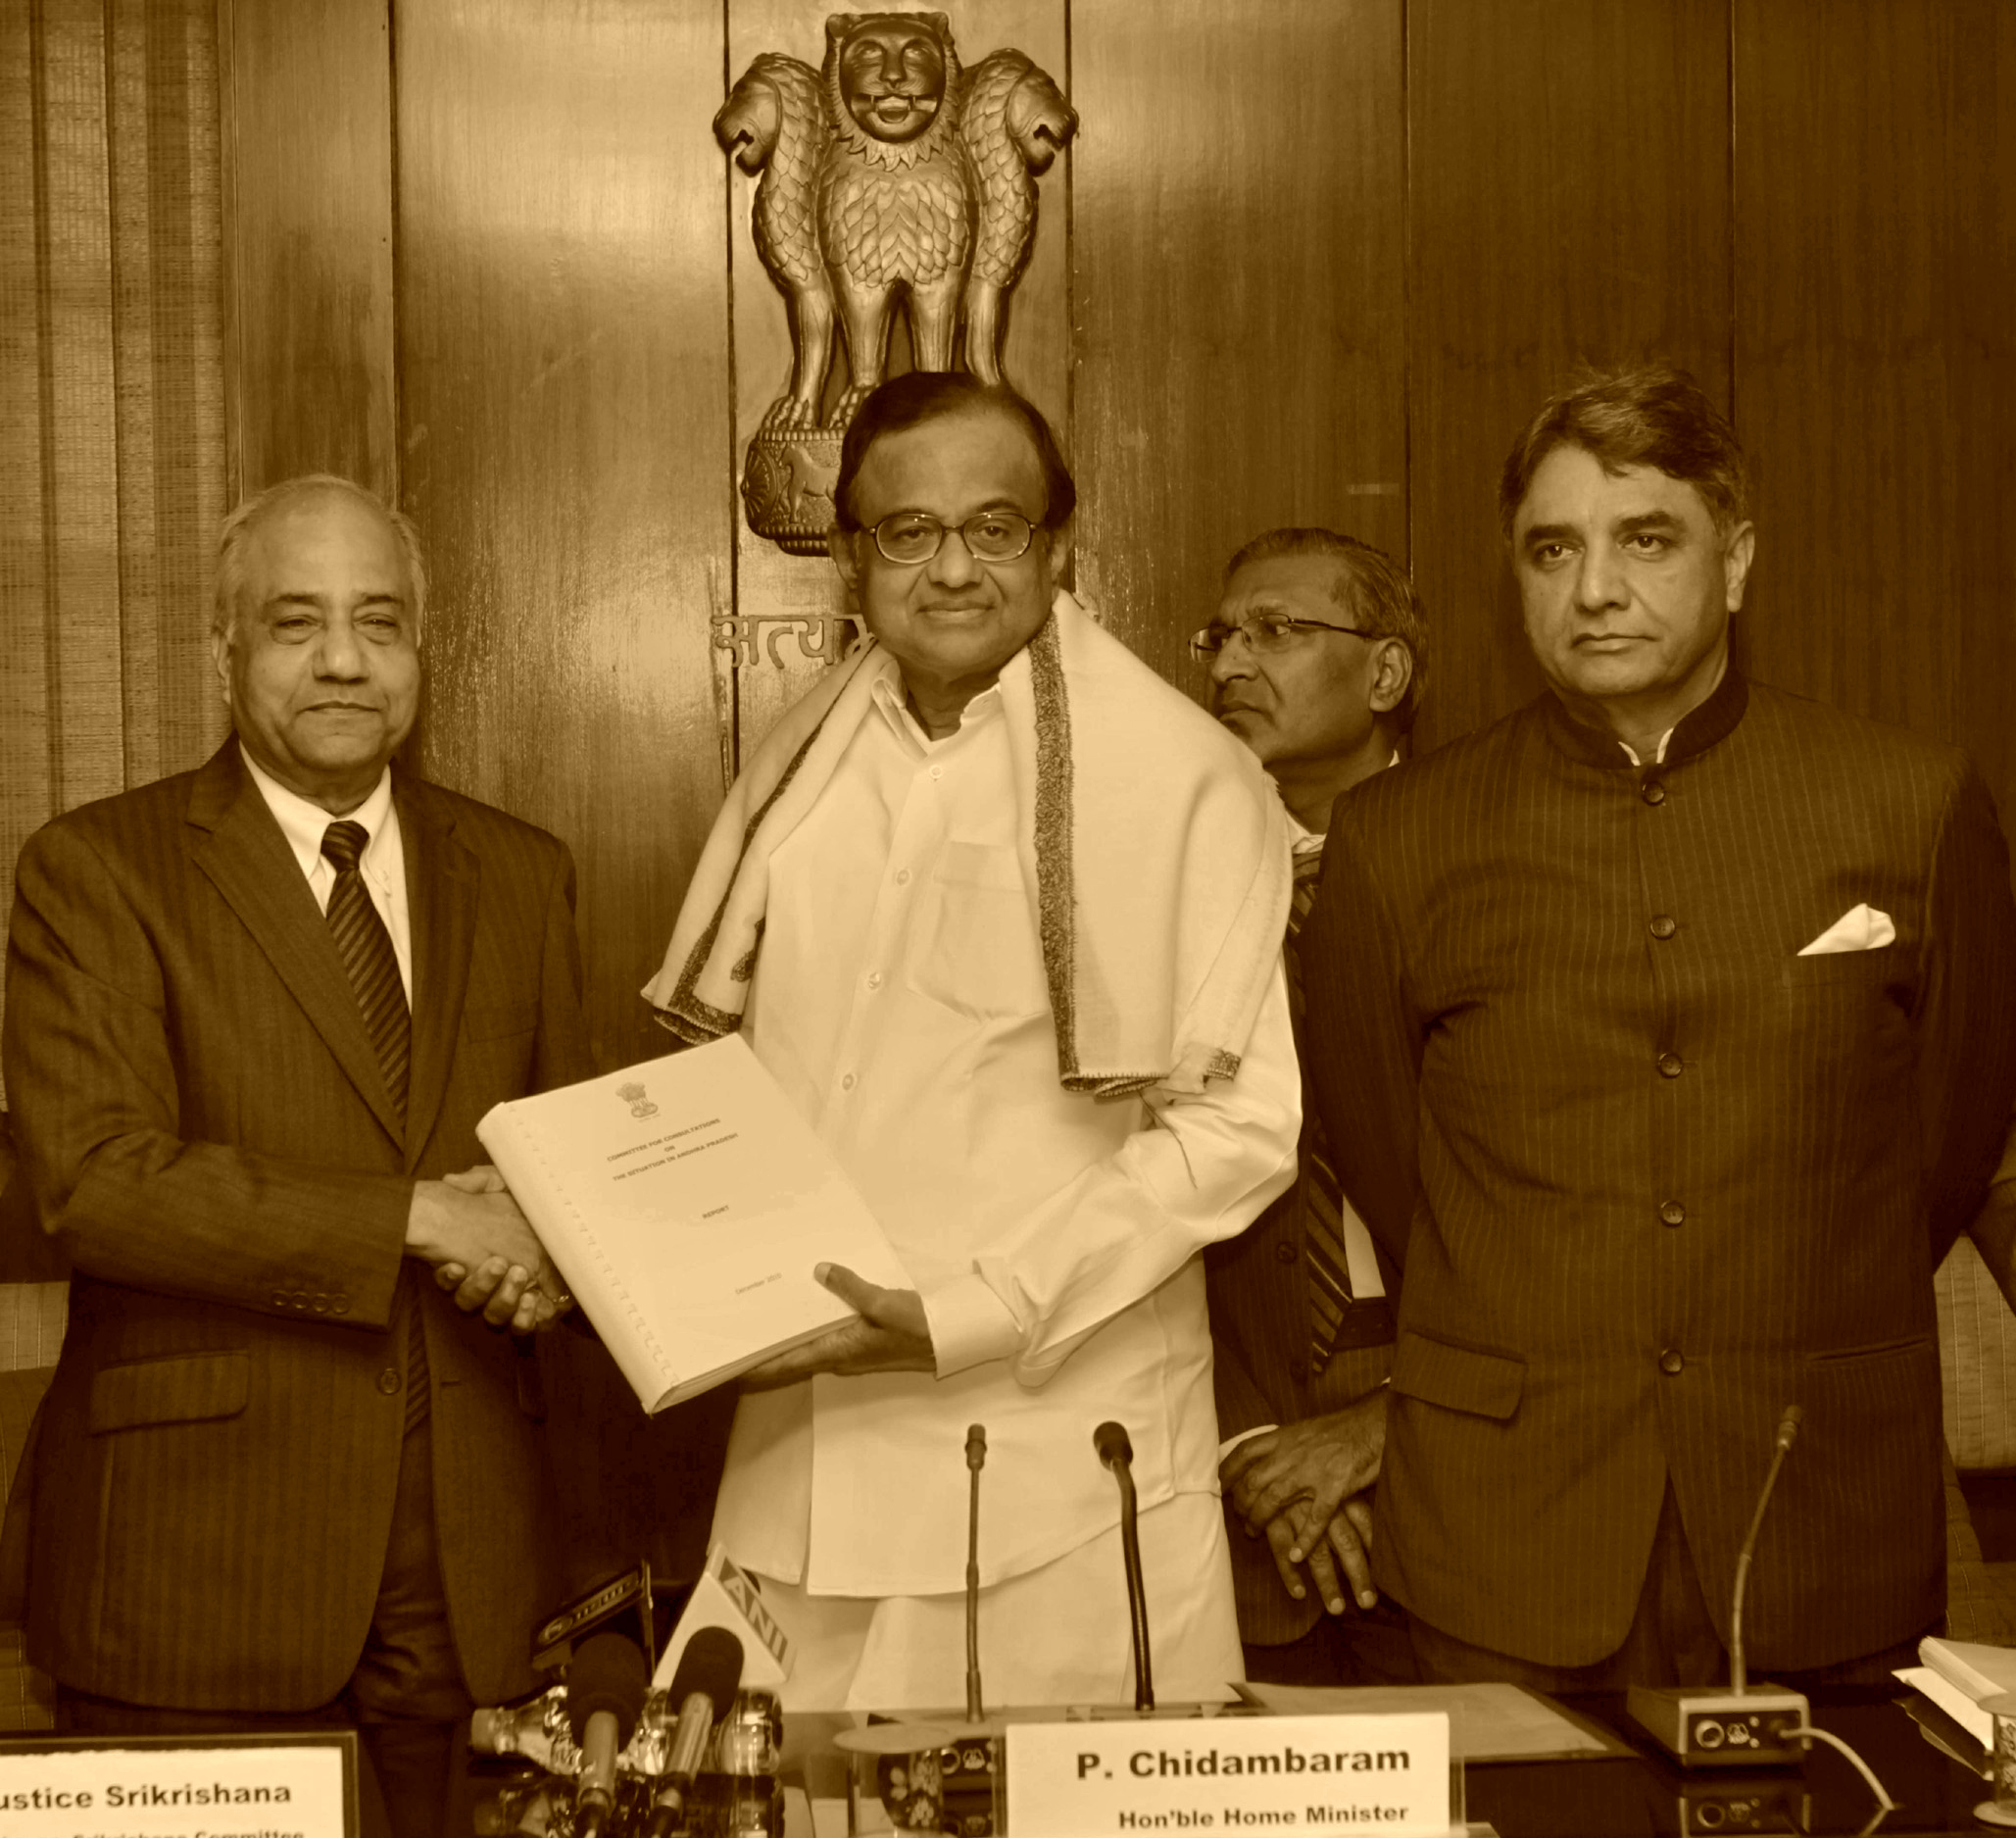 Justice (Retd) B.N. Srikrishna presented the Srikrishna Committee Report on Consultations with political parties and groups in Andhra Pradesh on Telangana issue to P. Chidambaram, who was the the Union Home Minister at that time, on December 30, 2010.